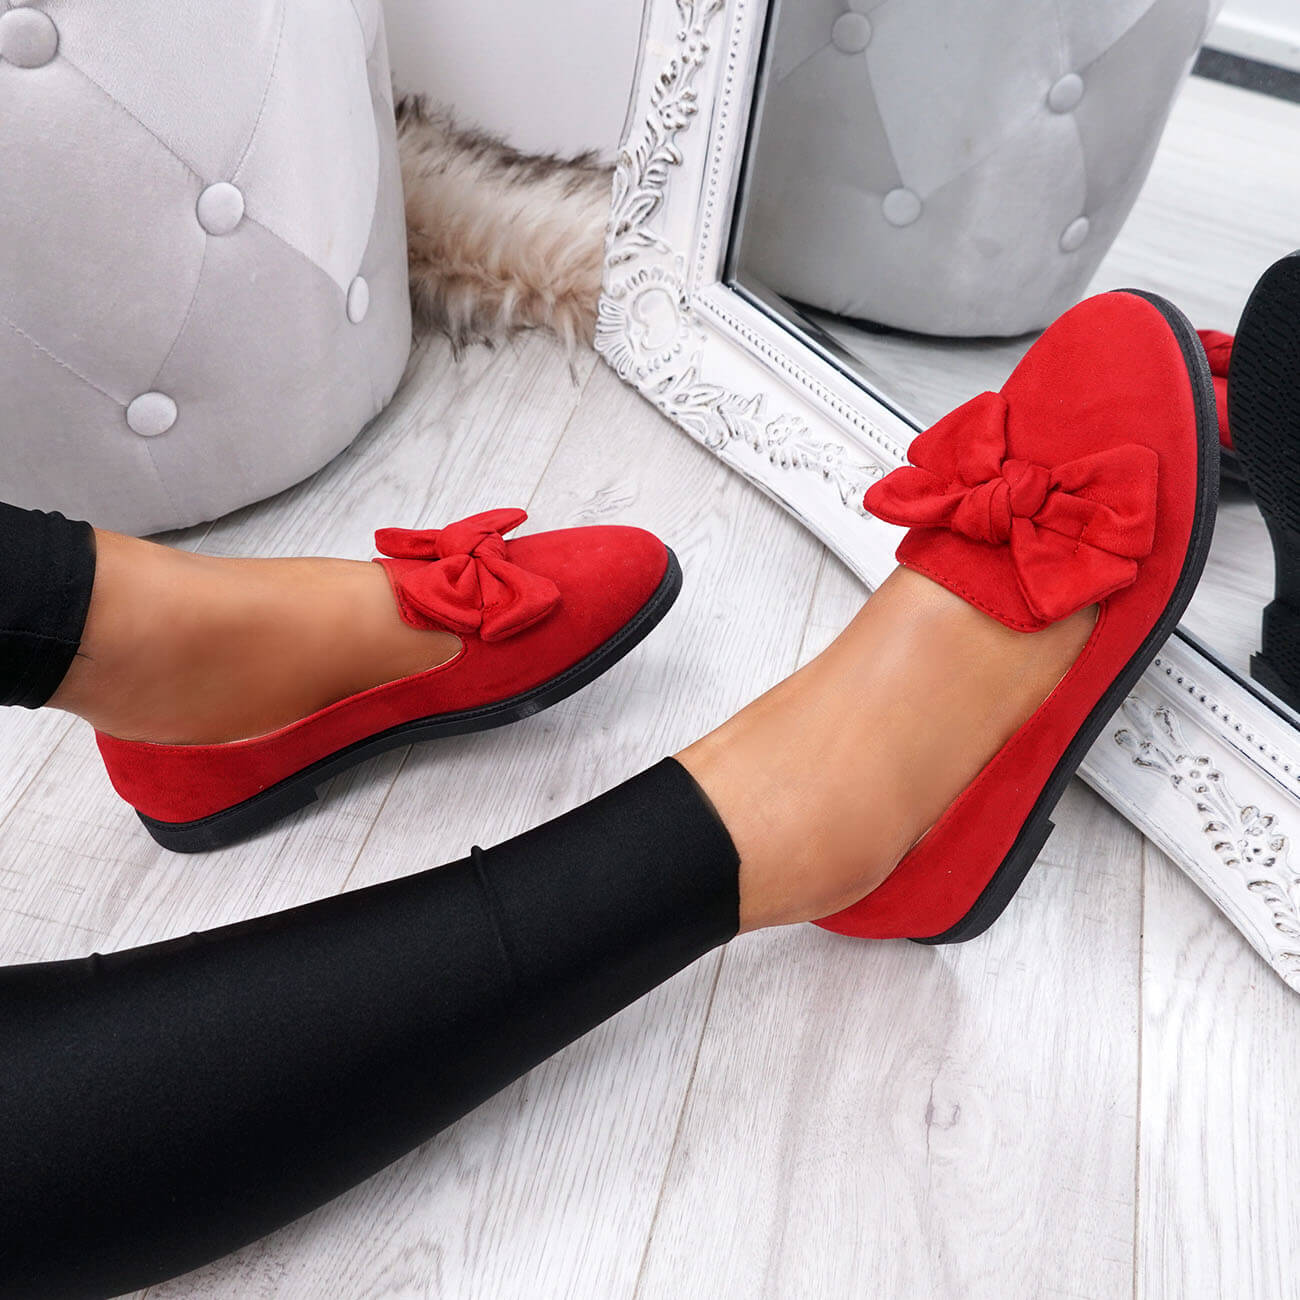 WOMENS-LADIES-BOW-BALLERINA-PUMPS-FLATS-SLIP-ON-BALLET-CASUAL-WORK-SHOES-SIZE thumbnail 32